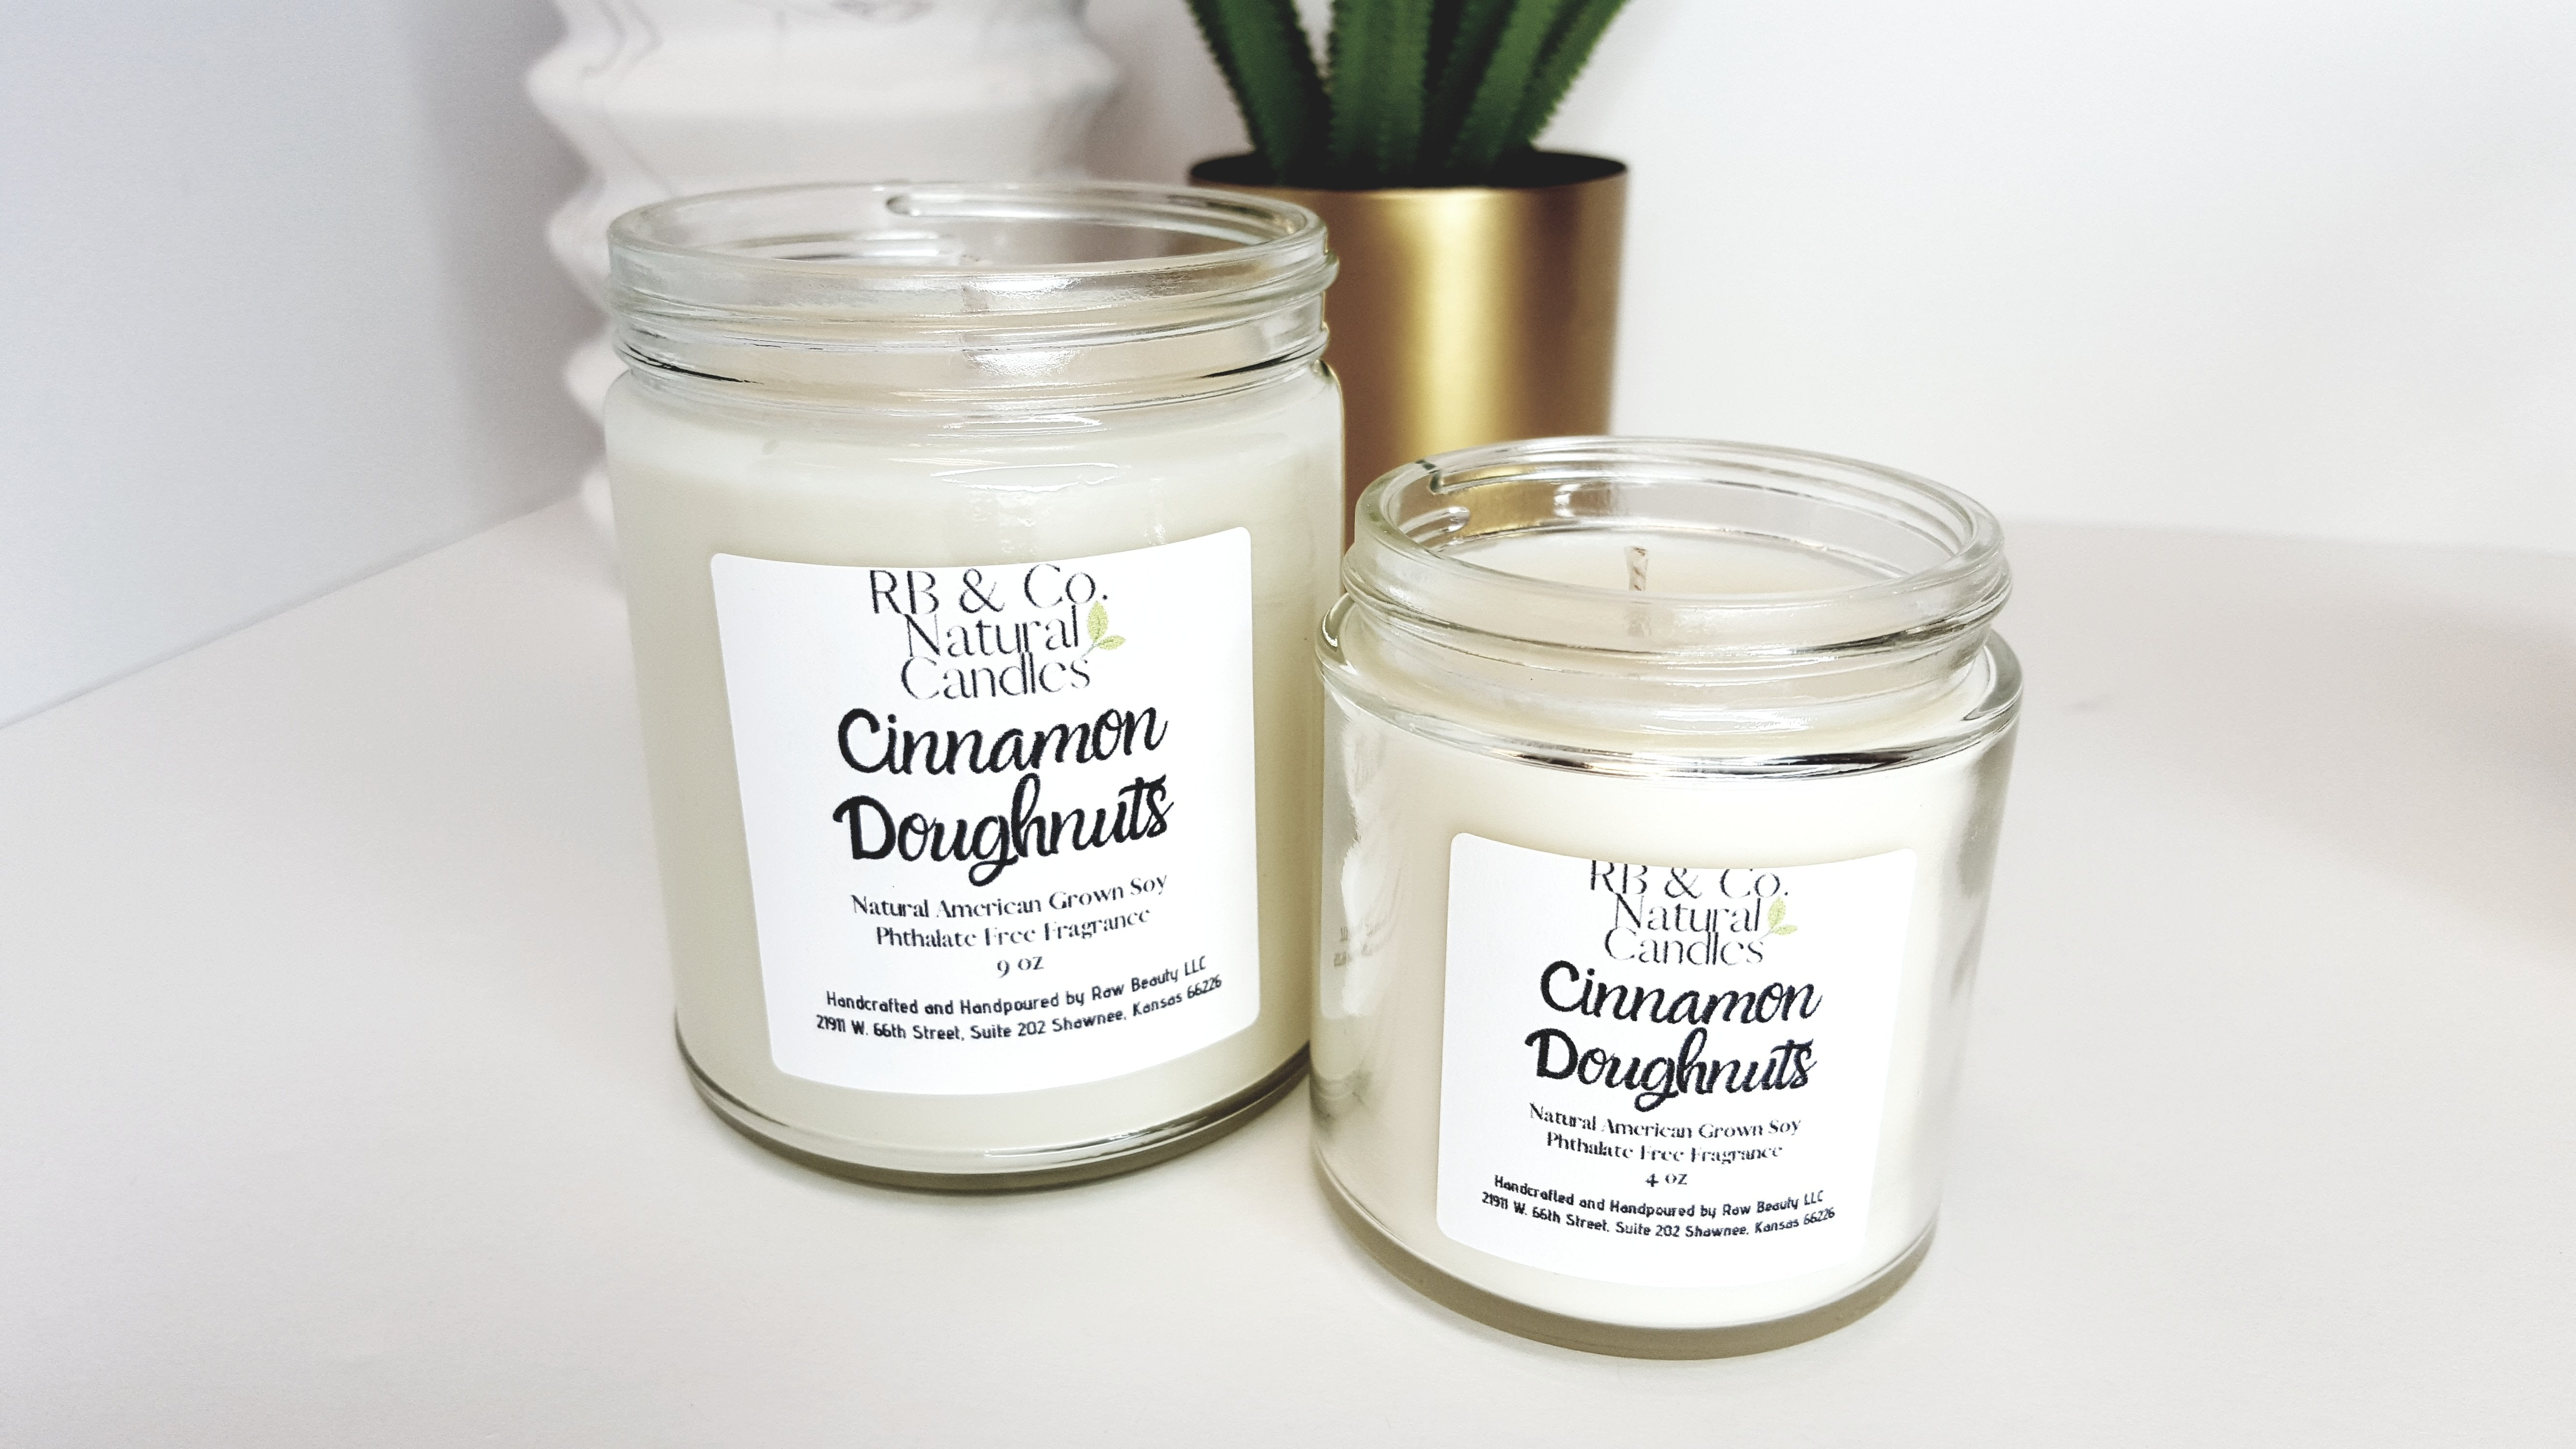 Cinnamon Doughnuts Scented Candle